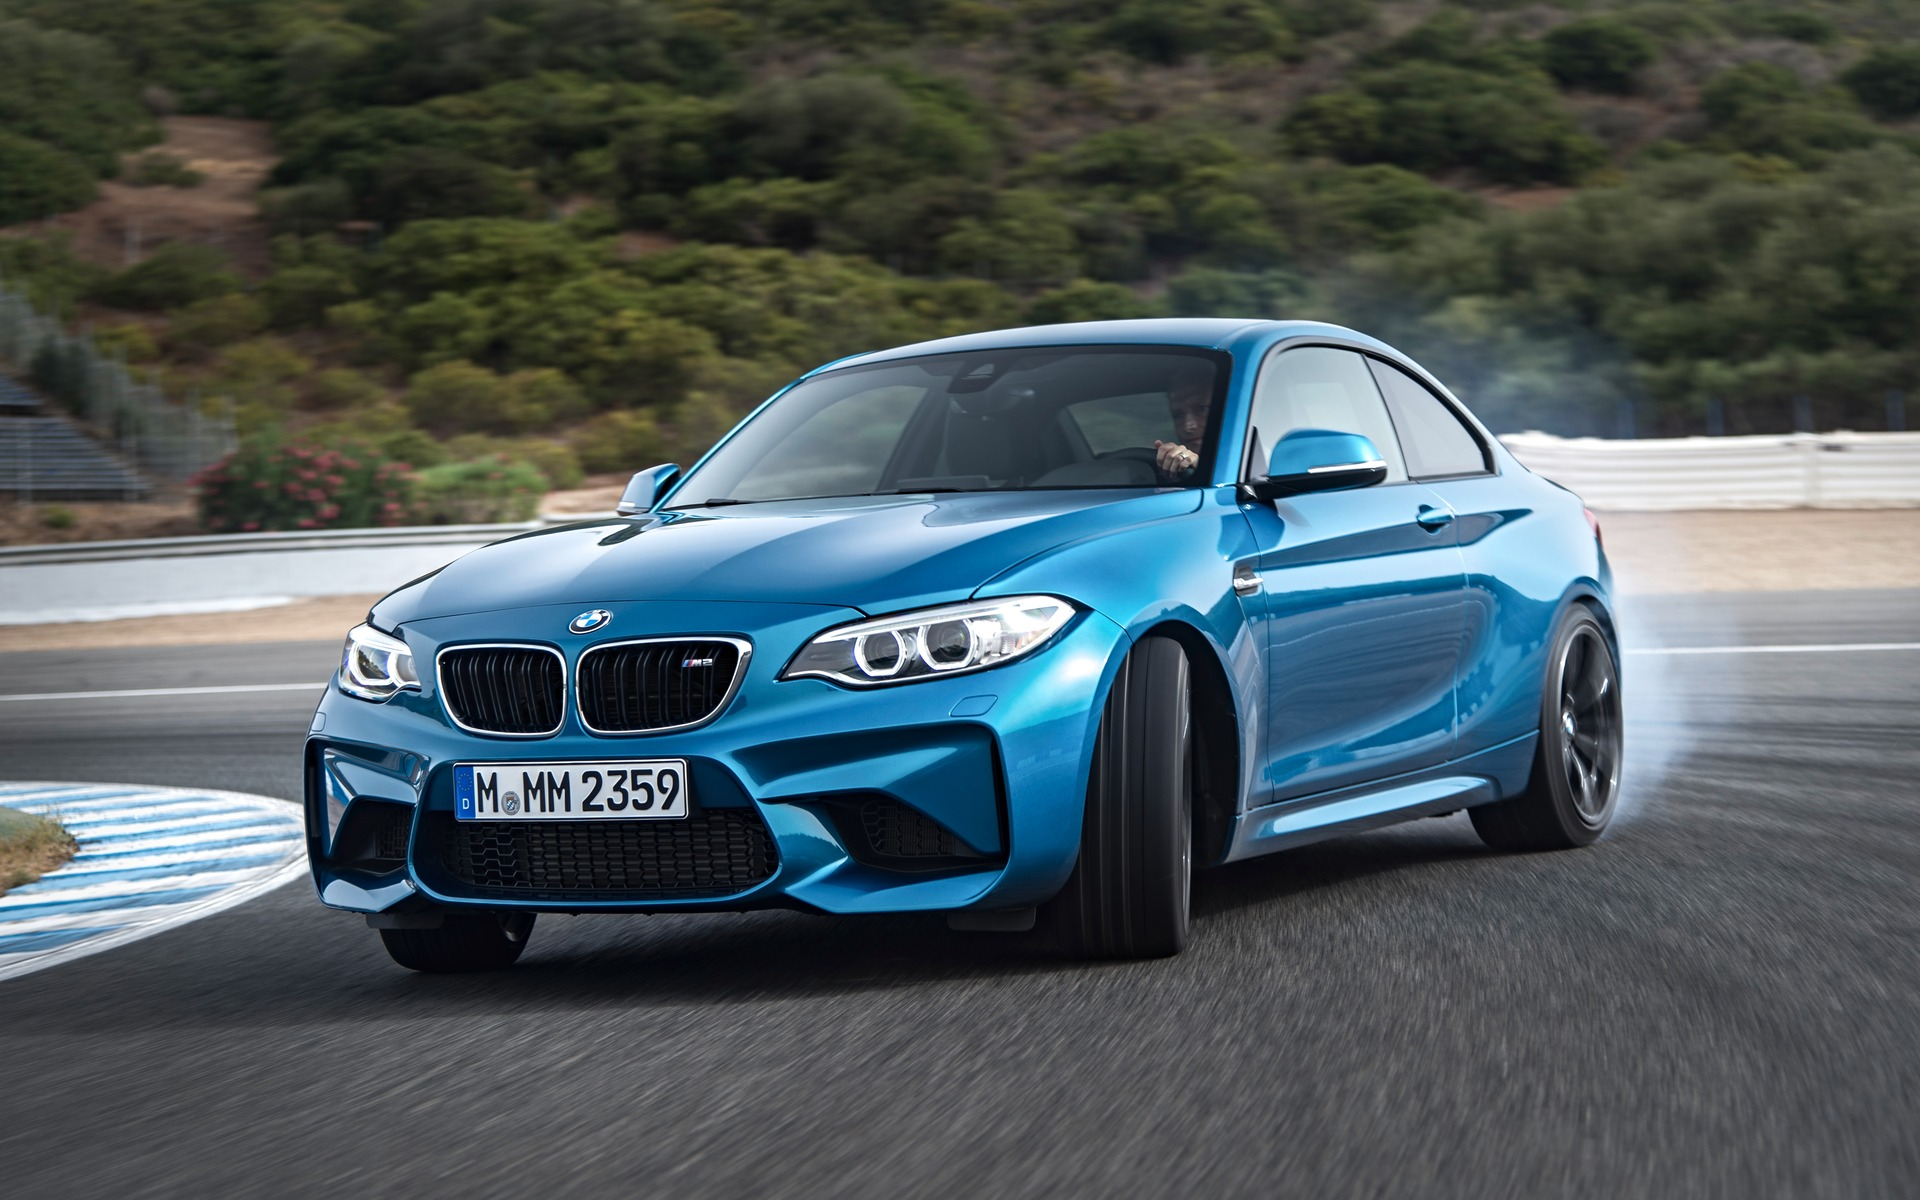 bmw m2 2016 l essai cette semaine guide auto. Black Bedroom Furniture Sets. Home Design Ideas